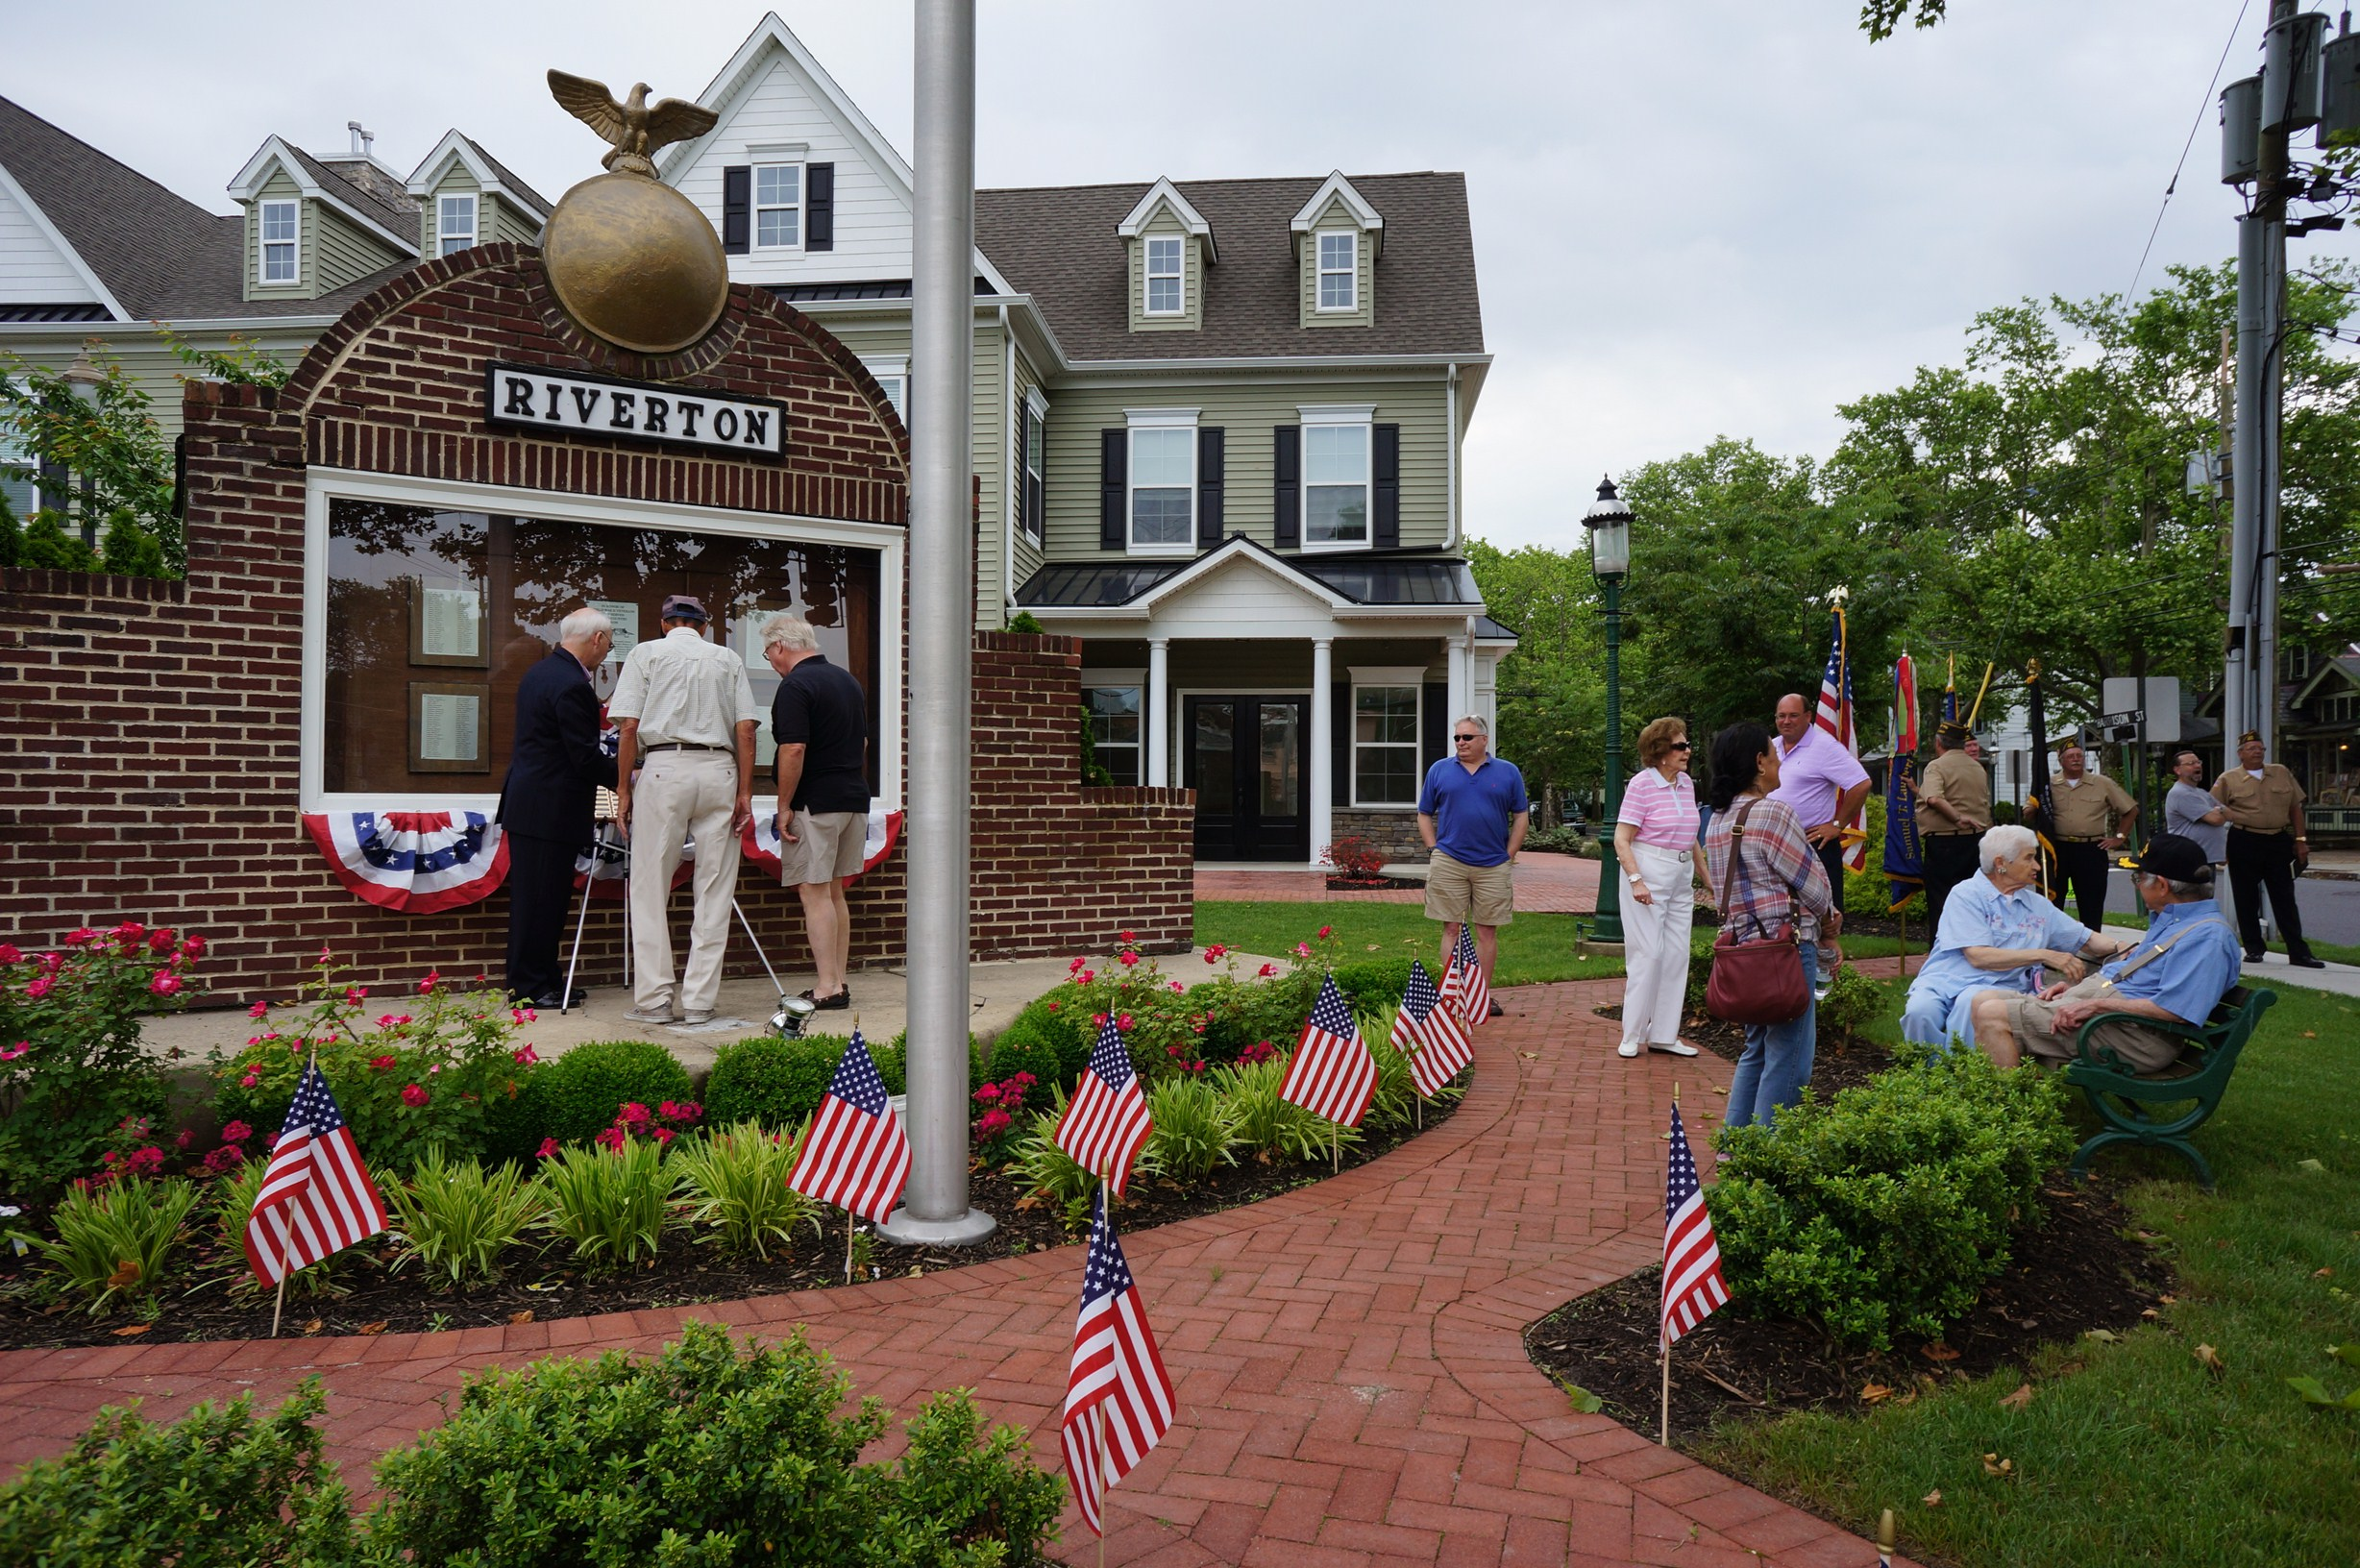 Memorial day marked by veterans friends and family may for The riverton